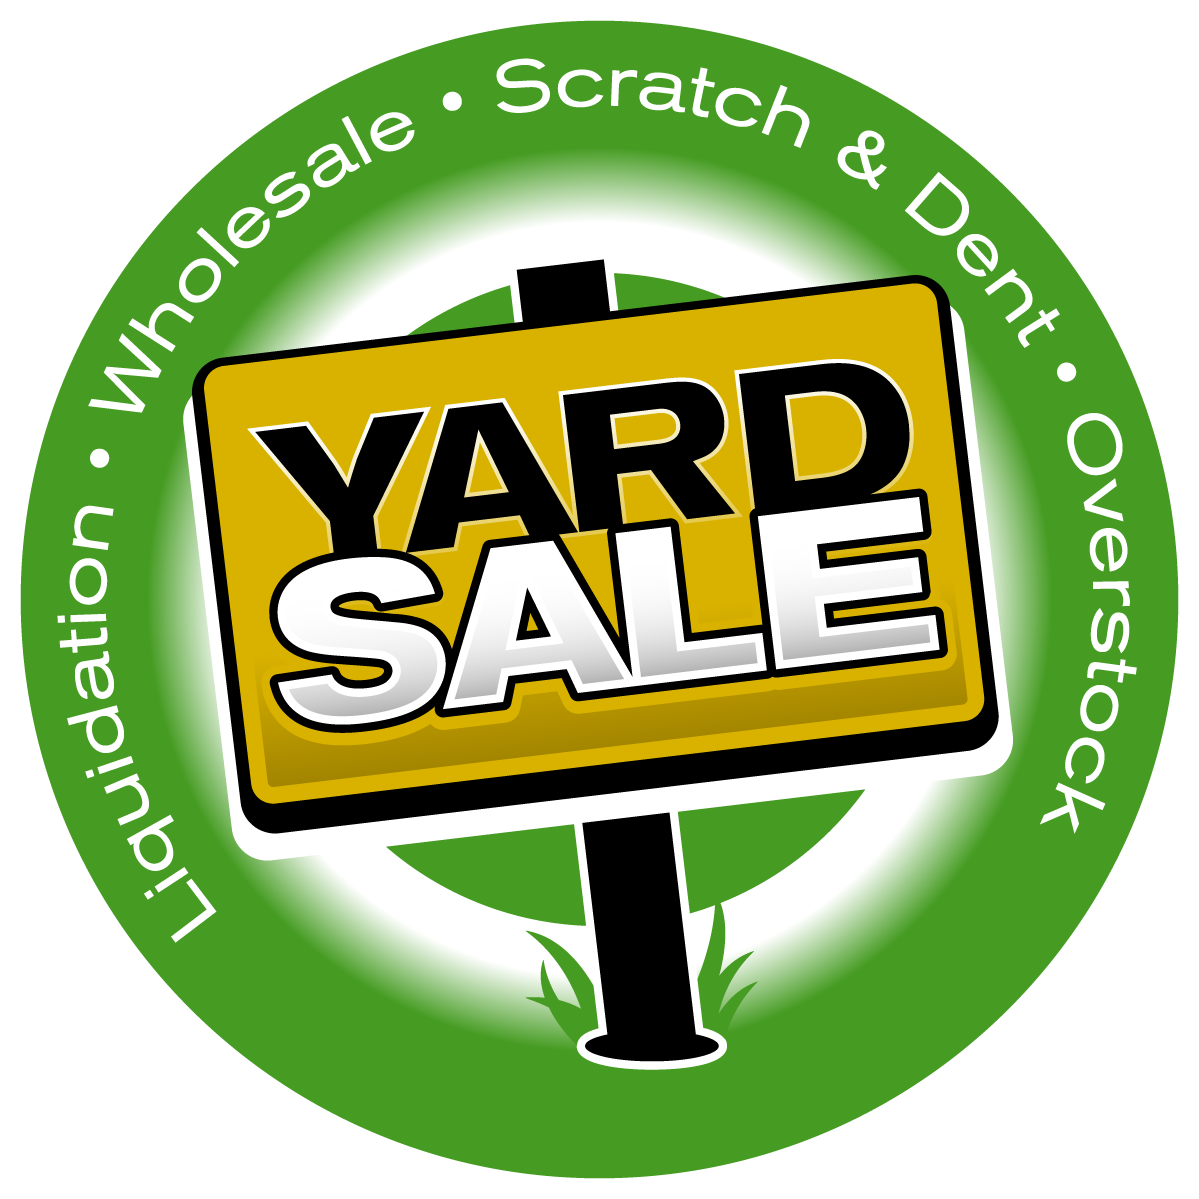 Yard Sale / The Auction House